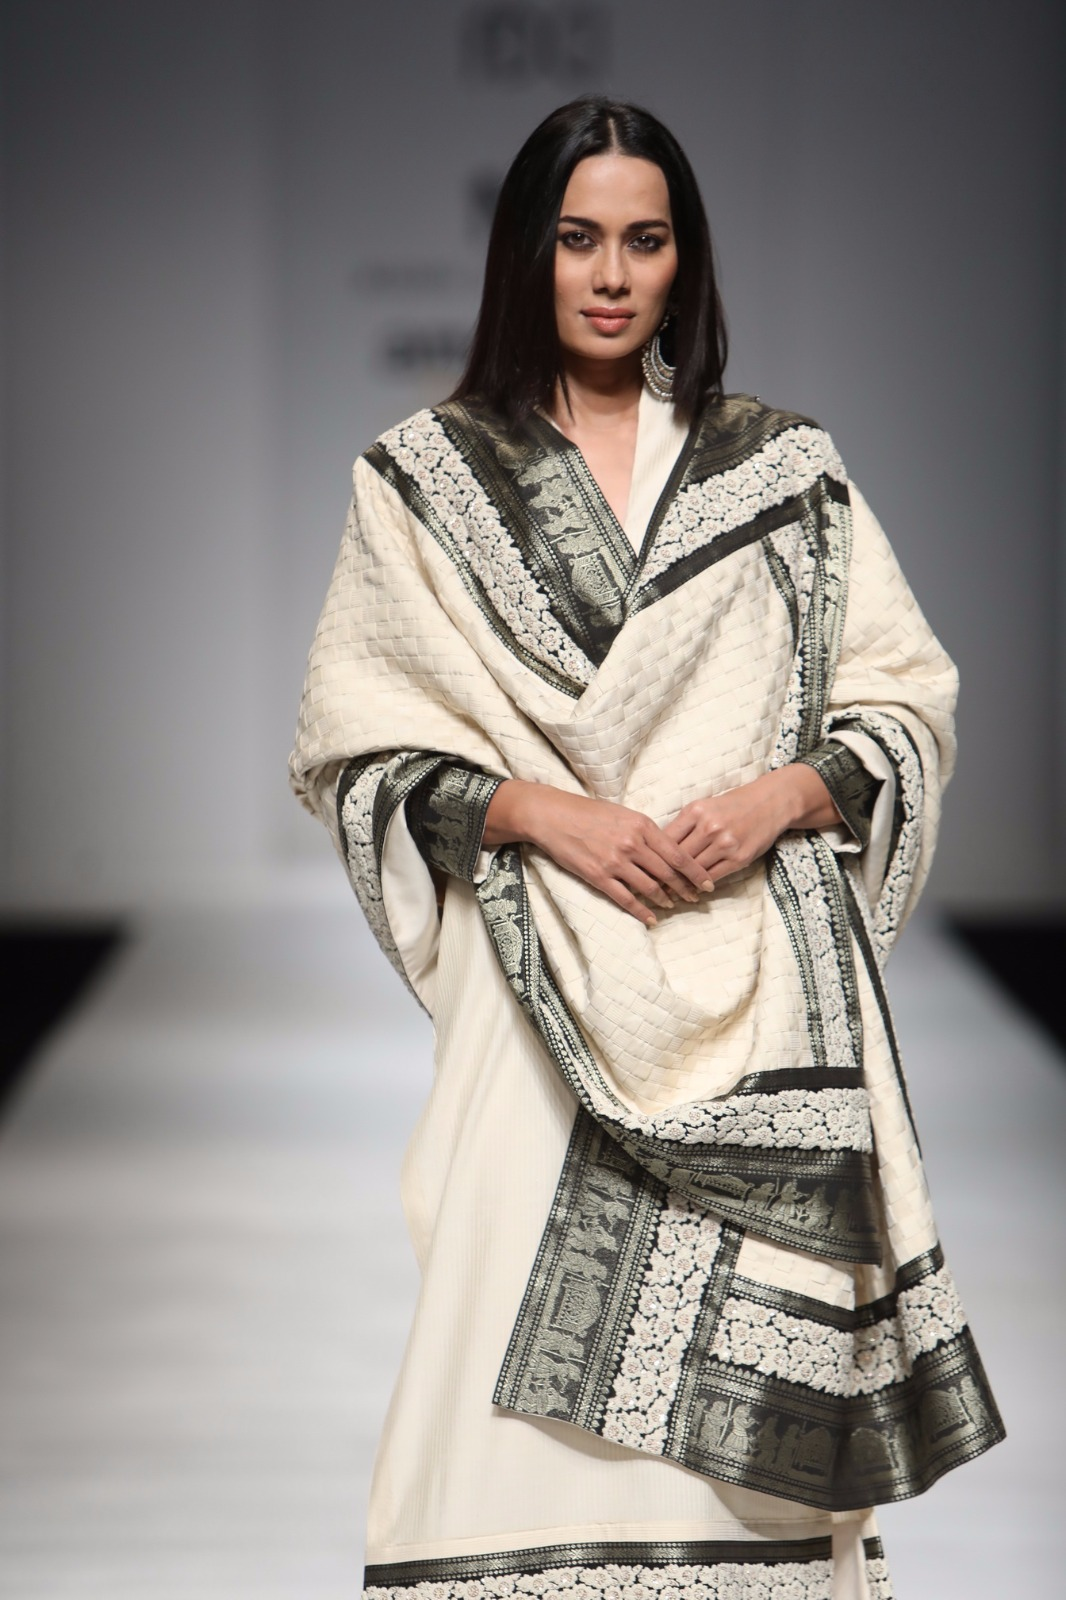 http://www.talksassy.com/wp-content/uploads/2017/03/Amazon-India-Fashion-Week-Autumn-Winter-2017-42.jpg